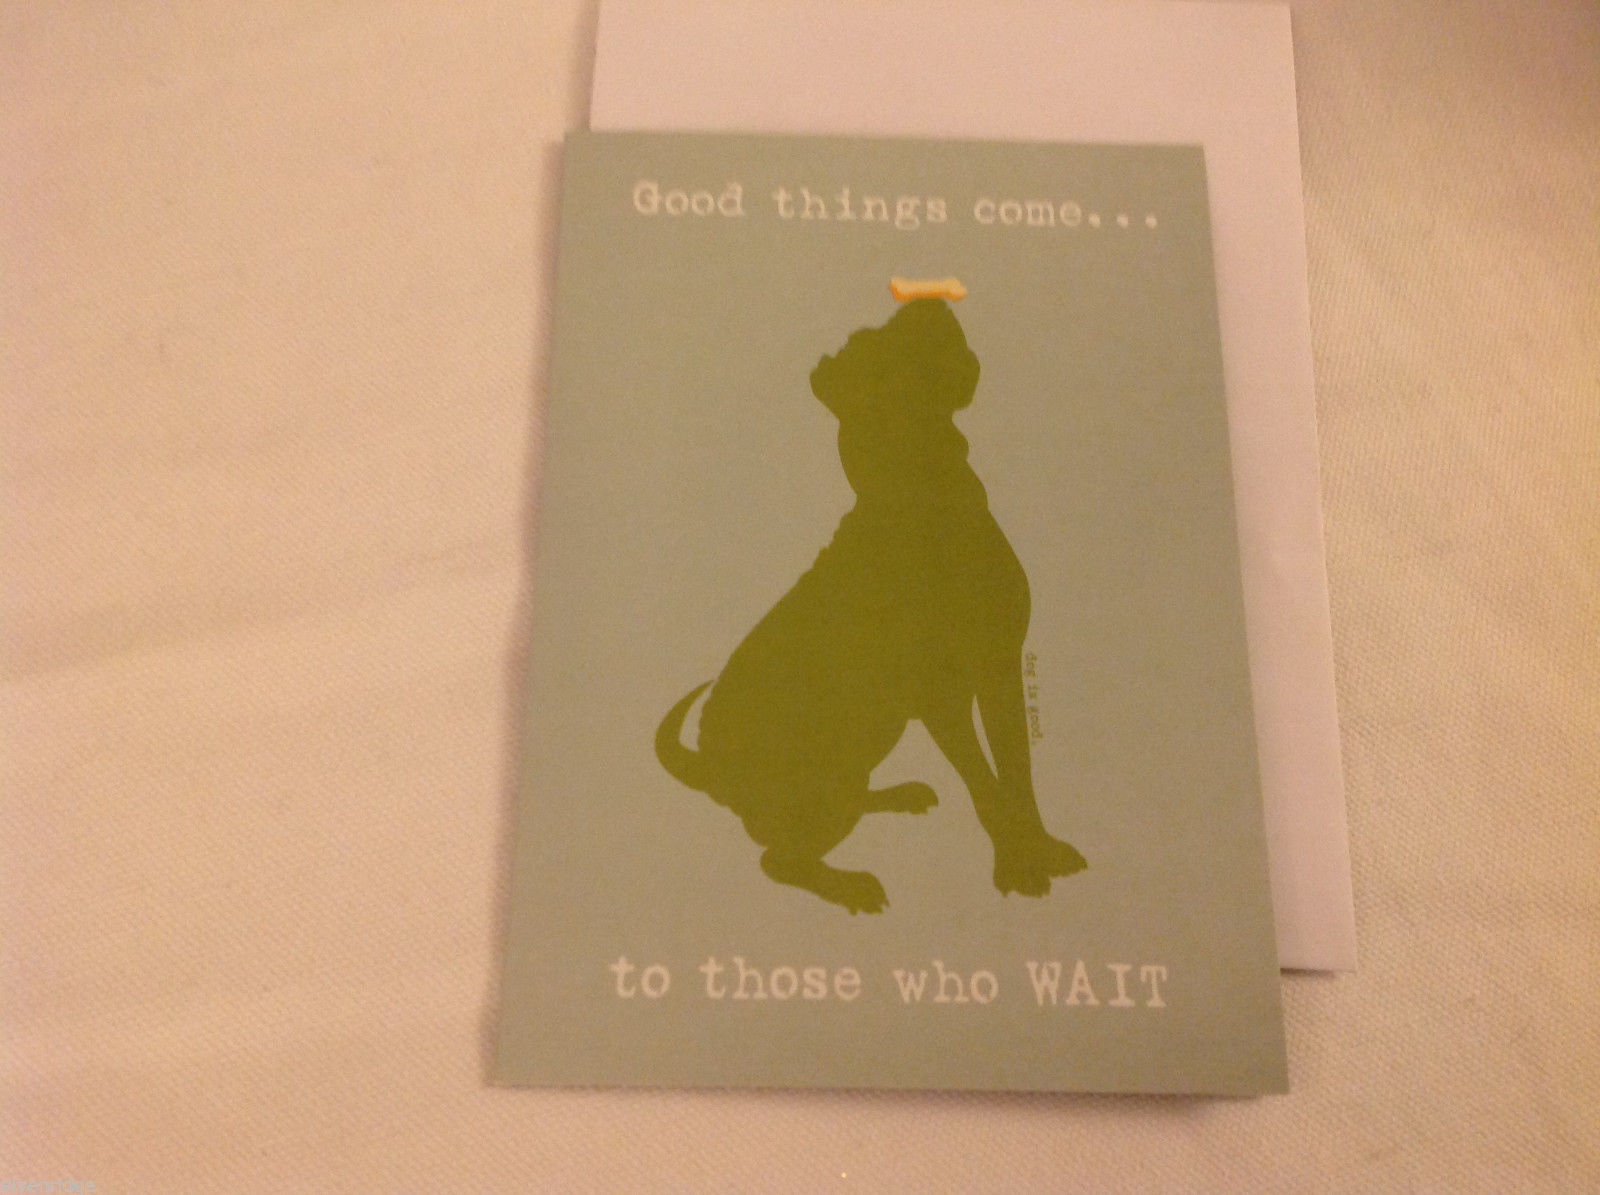 Canine Gift Greeting Card  DOG IS GOOD Good things come to those who wait